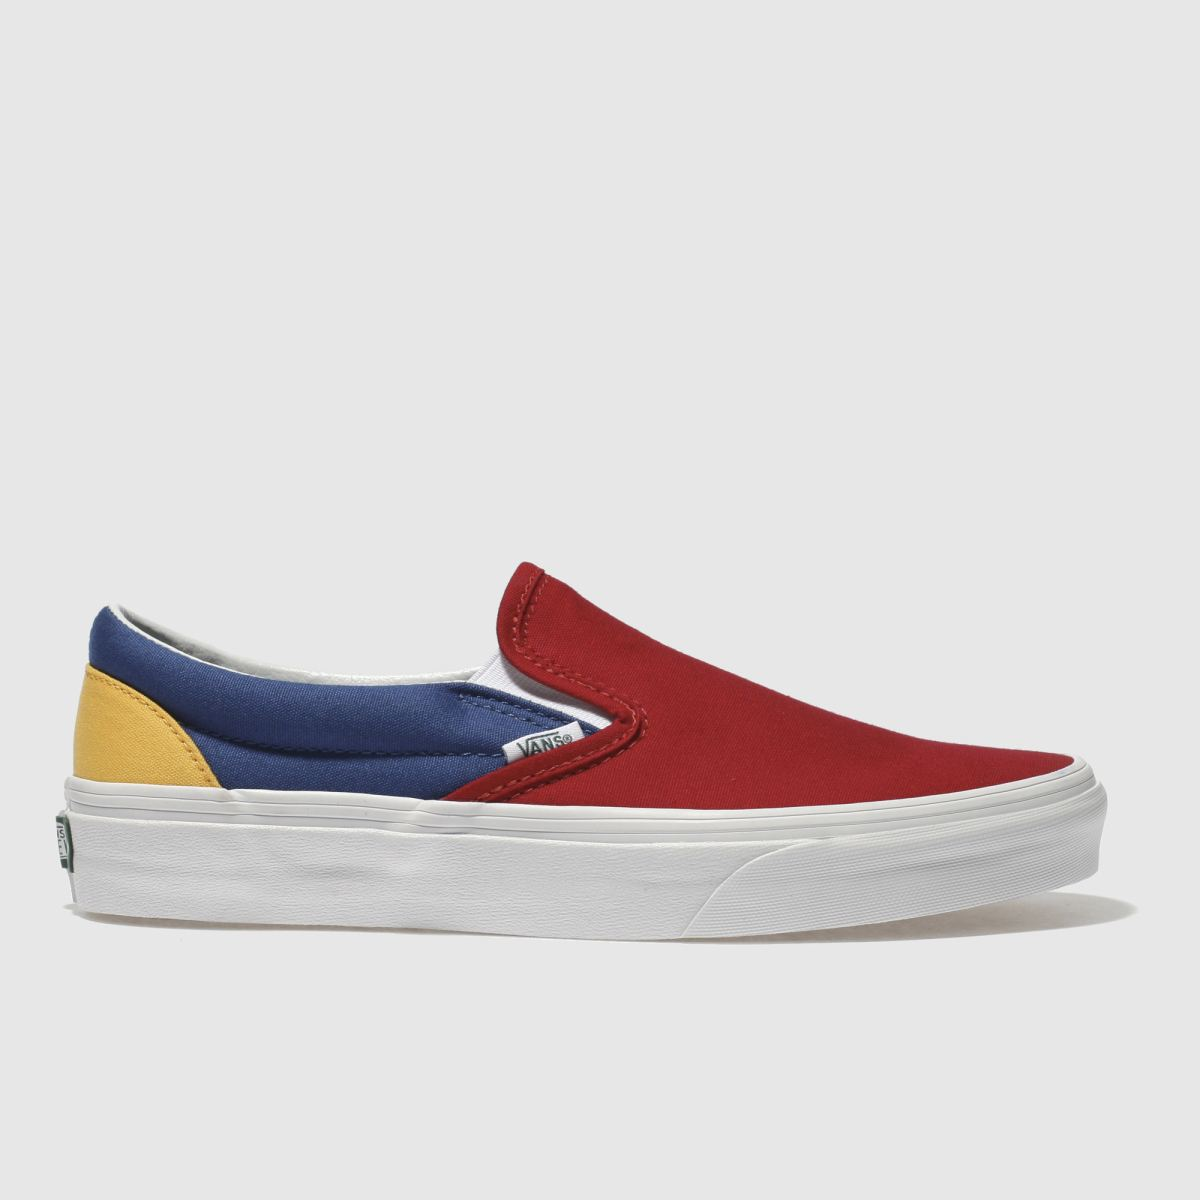 Vans Navy & Red Classic Slip-on Trainers